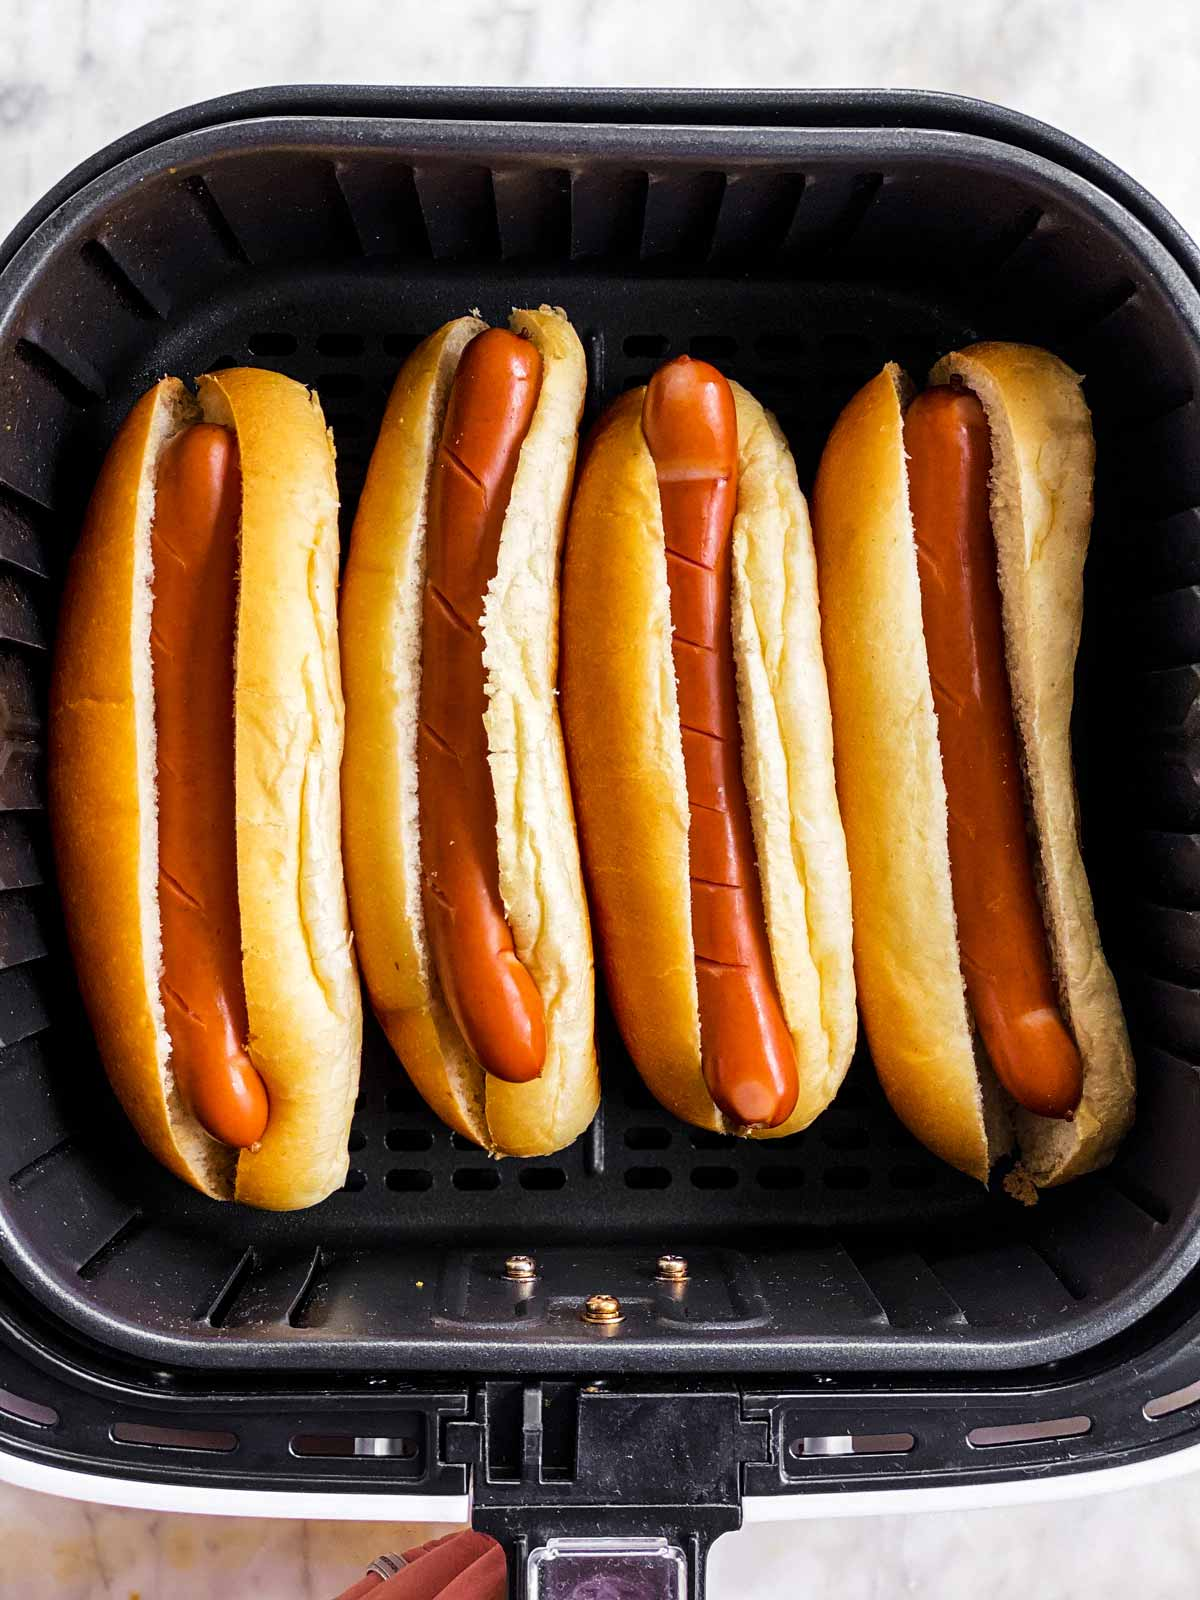 four hot dogs in buns in air fryer basket